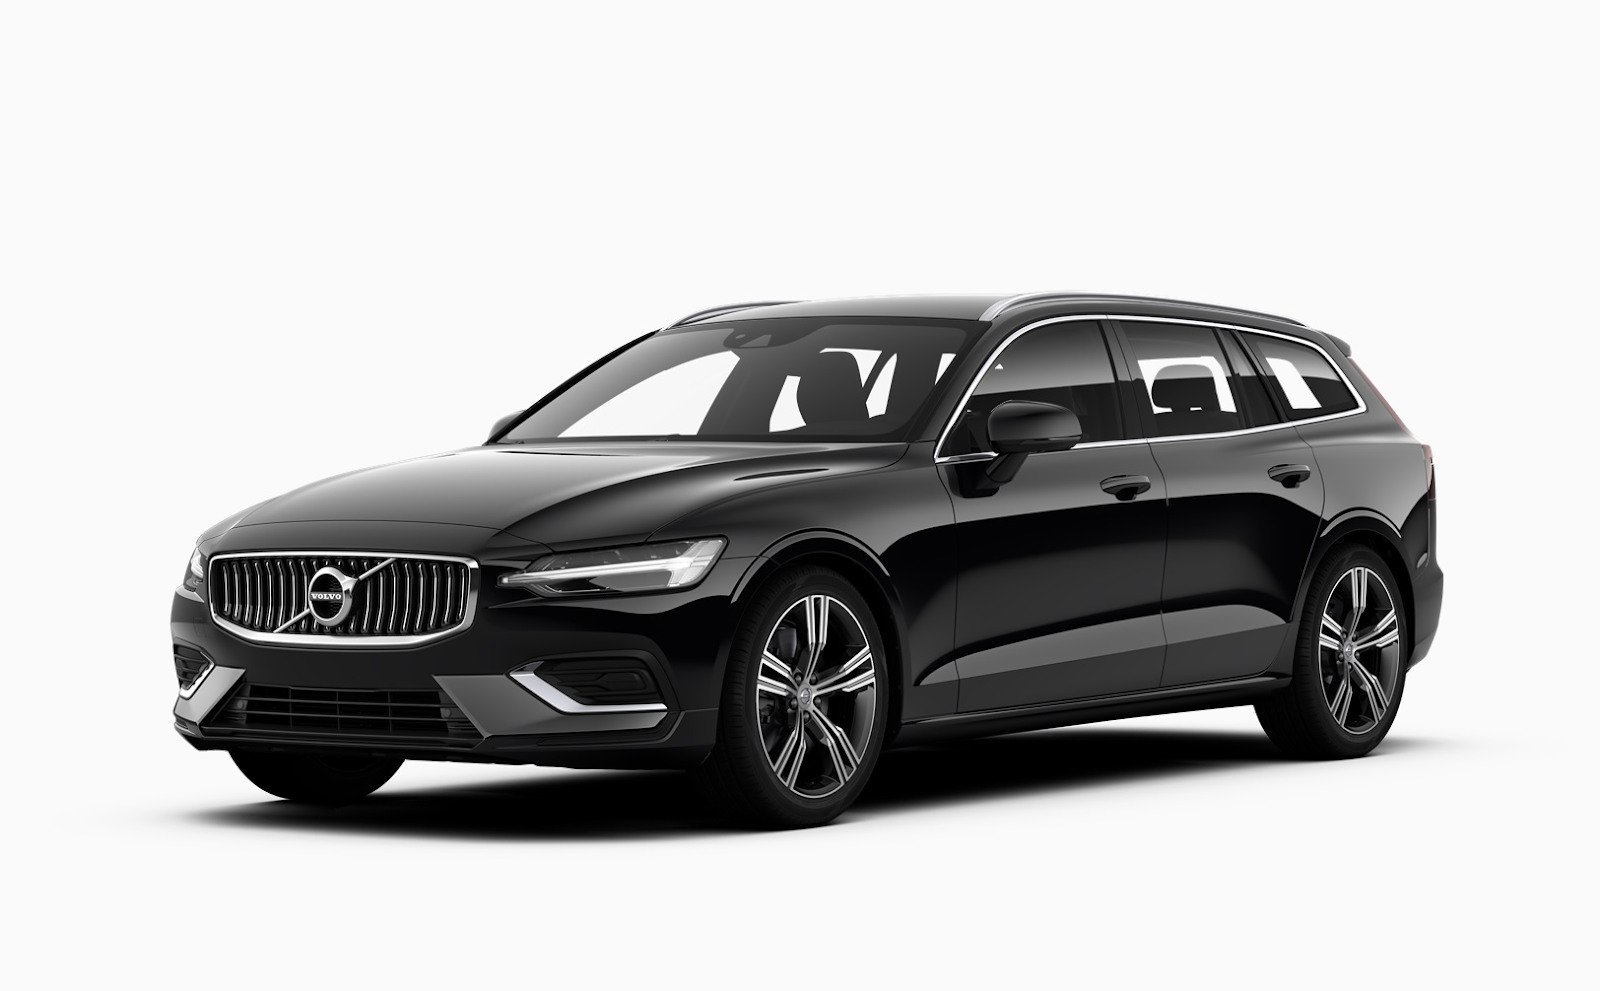 Volvo V60 II (2019) - Couleurs / Colors